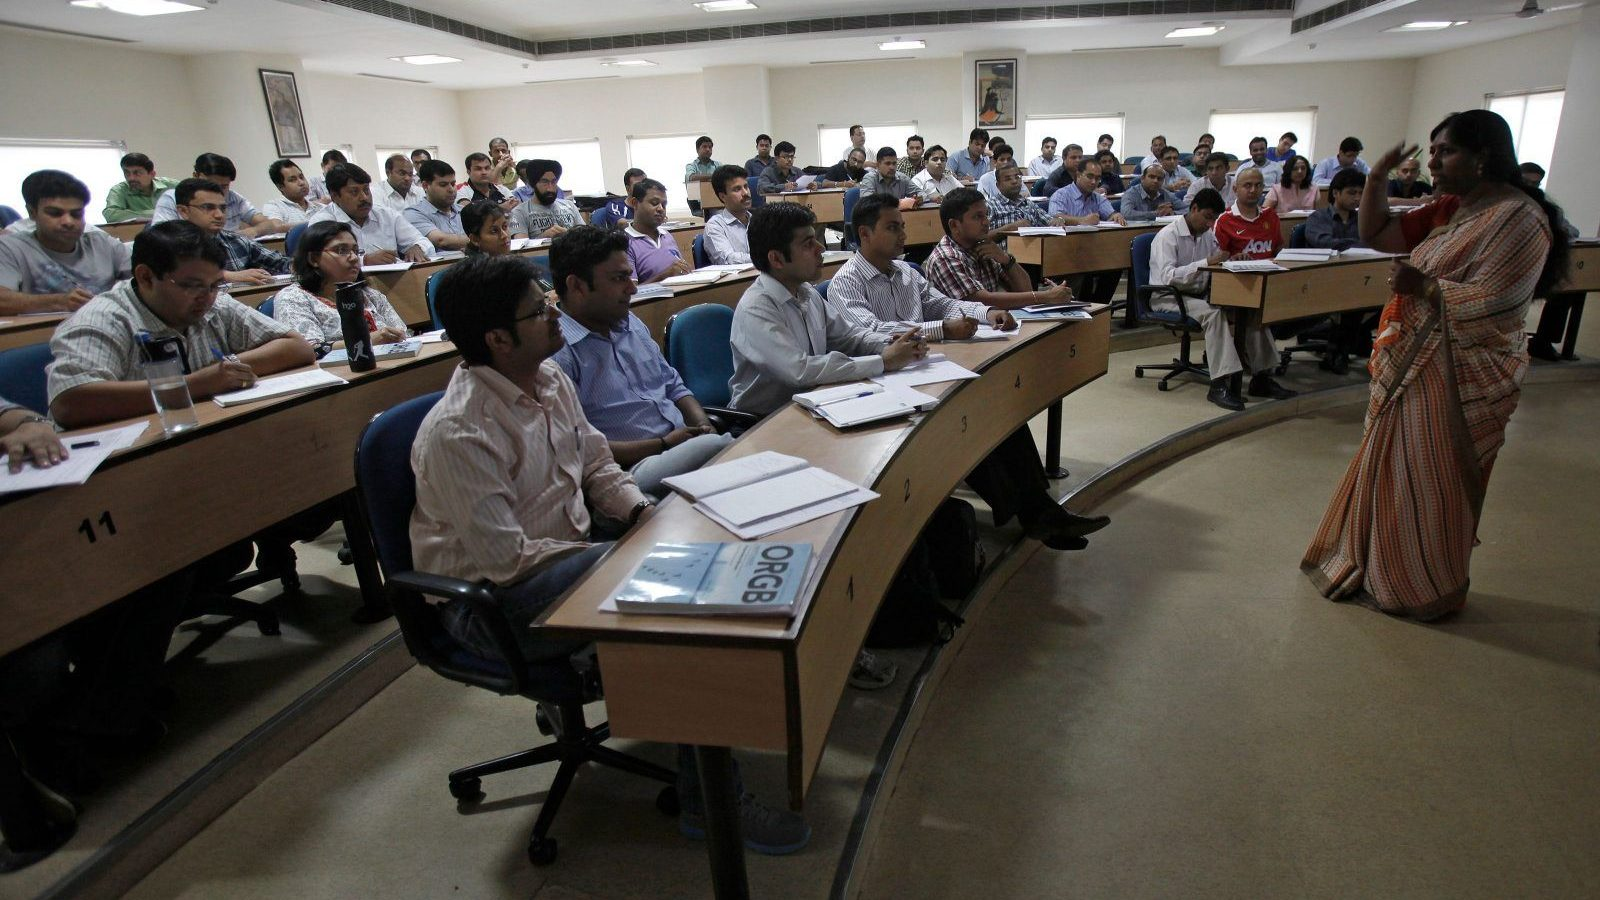 Master of Business Administration (MBA) students attend a lecture at a classroom at the Management Development Institute (MDI) in Gurgaon, on the outskirts of New Delhi May 2, 2012.  Fiscal constraints have increased the Indian government's reliance on private education institutes leading to a proliferation of private colleges like MDI. The number of management institutes has more than trebled to around 4000 in the last five years, of which at least two-thirds are estimated to be private colleges.    Picture taken May 2, 2012.       REUTERS/Adnan Abidi (INDIA - Tags: EDUCATION SOCIETY)  ATTENTION EDITORS: PICTURE 8 OF 22 FOR PACKAGE  'INDIA'S EDUCATION PRICE TAG' SEARCH 'GURGAON' FOR ALL IMAGES - GM1E87M15KW01